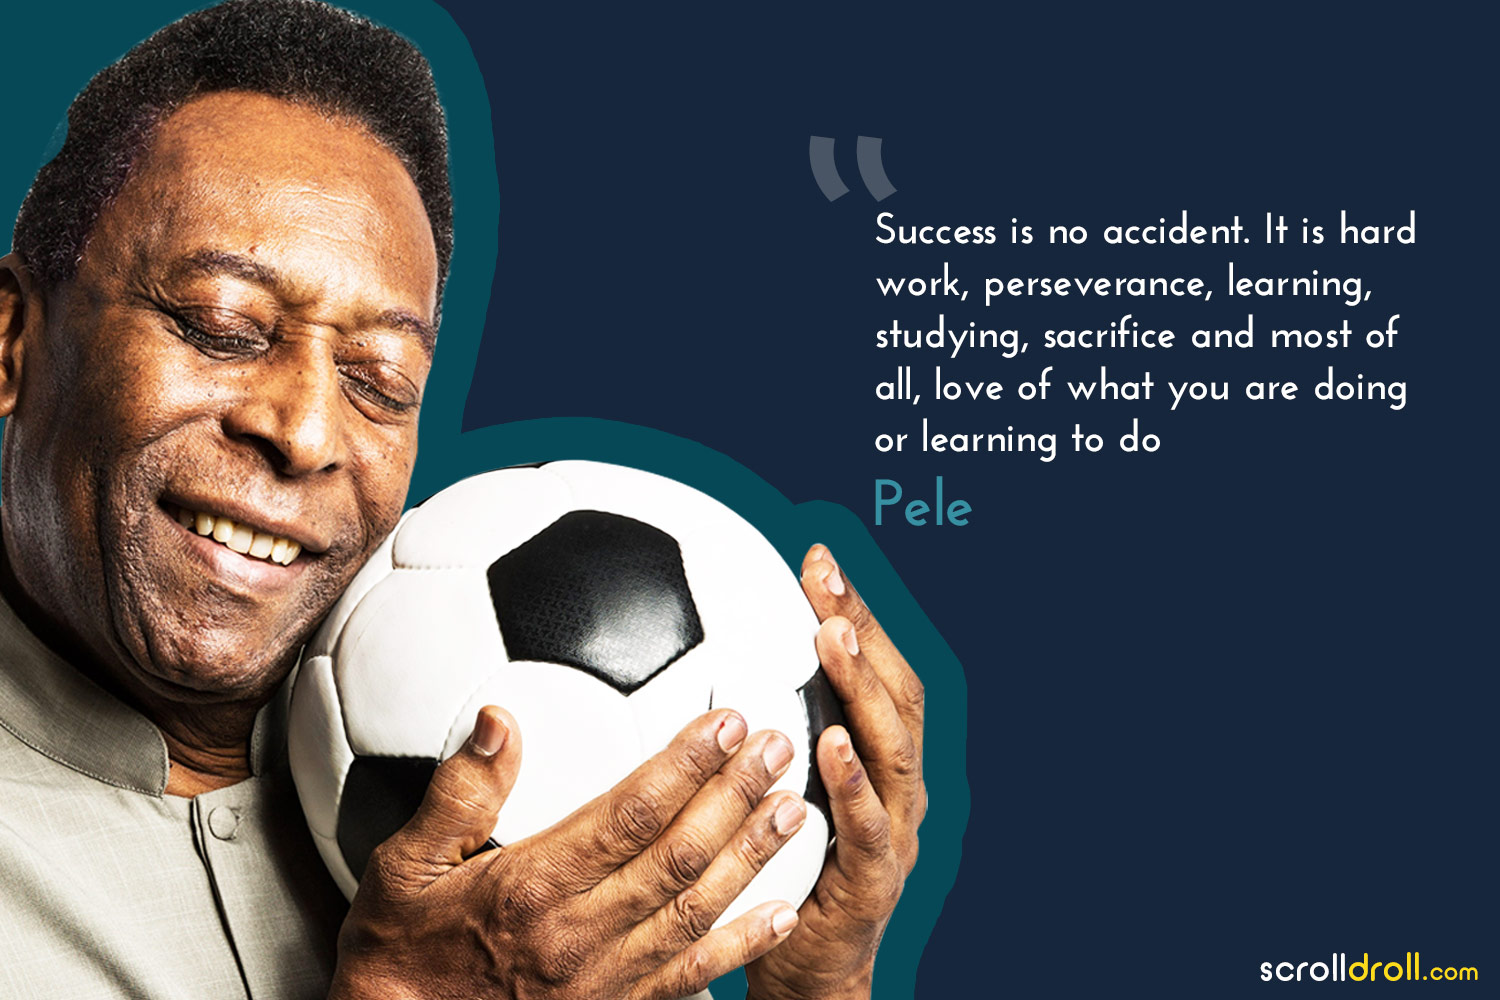 Powerful Quotes By Successful People-quote by pele